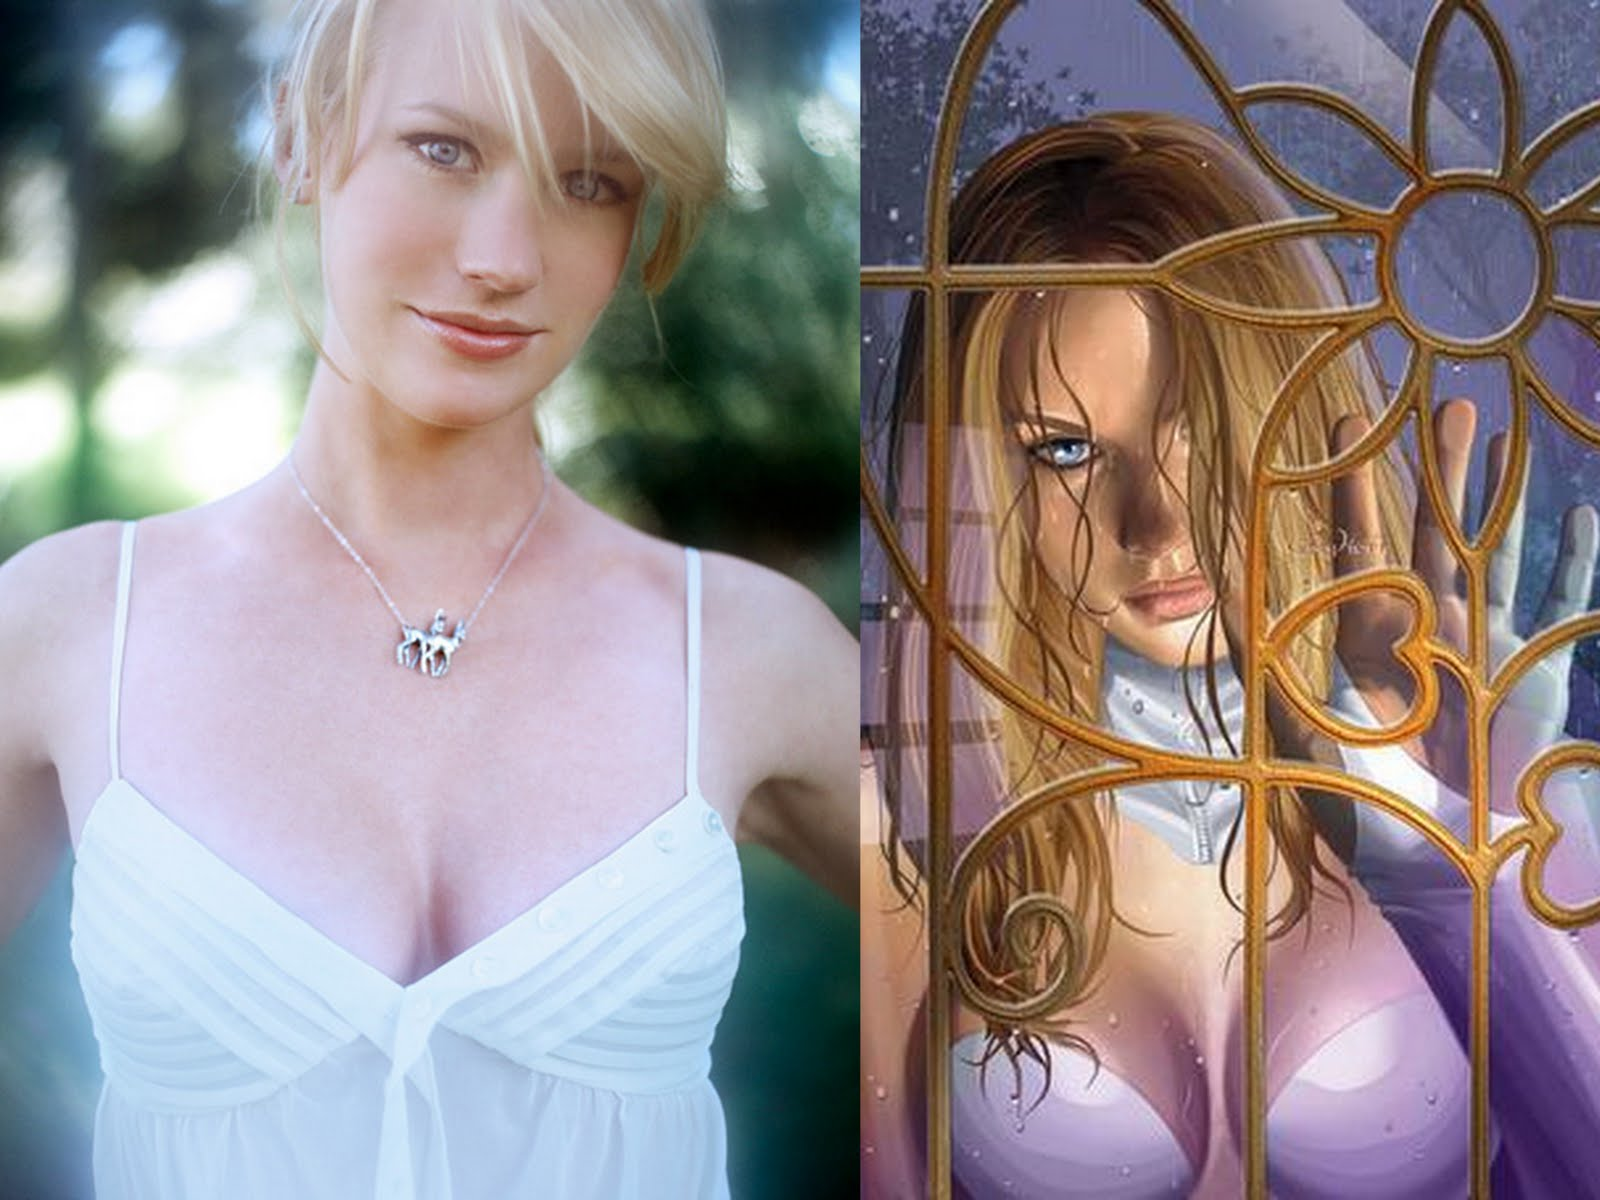 now portray Emma Frost